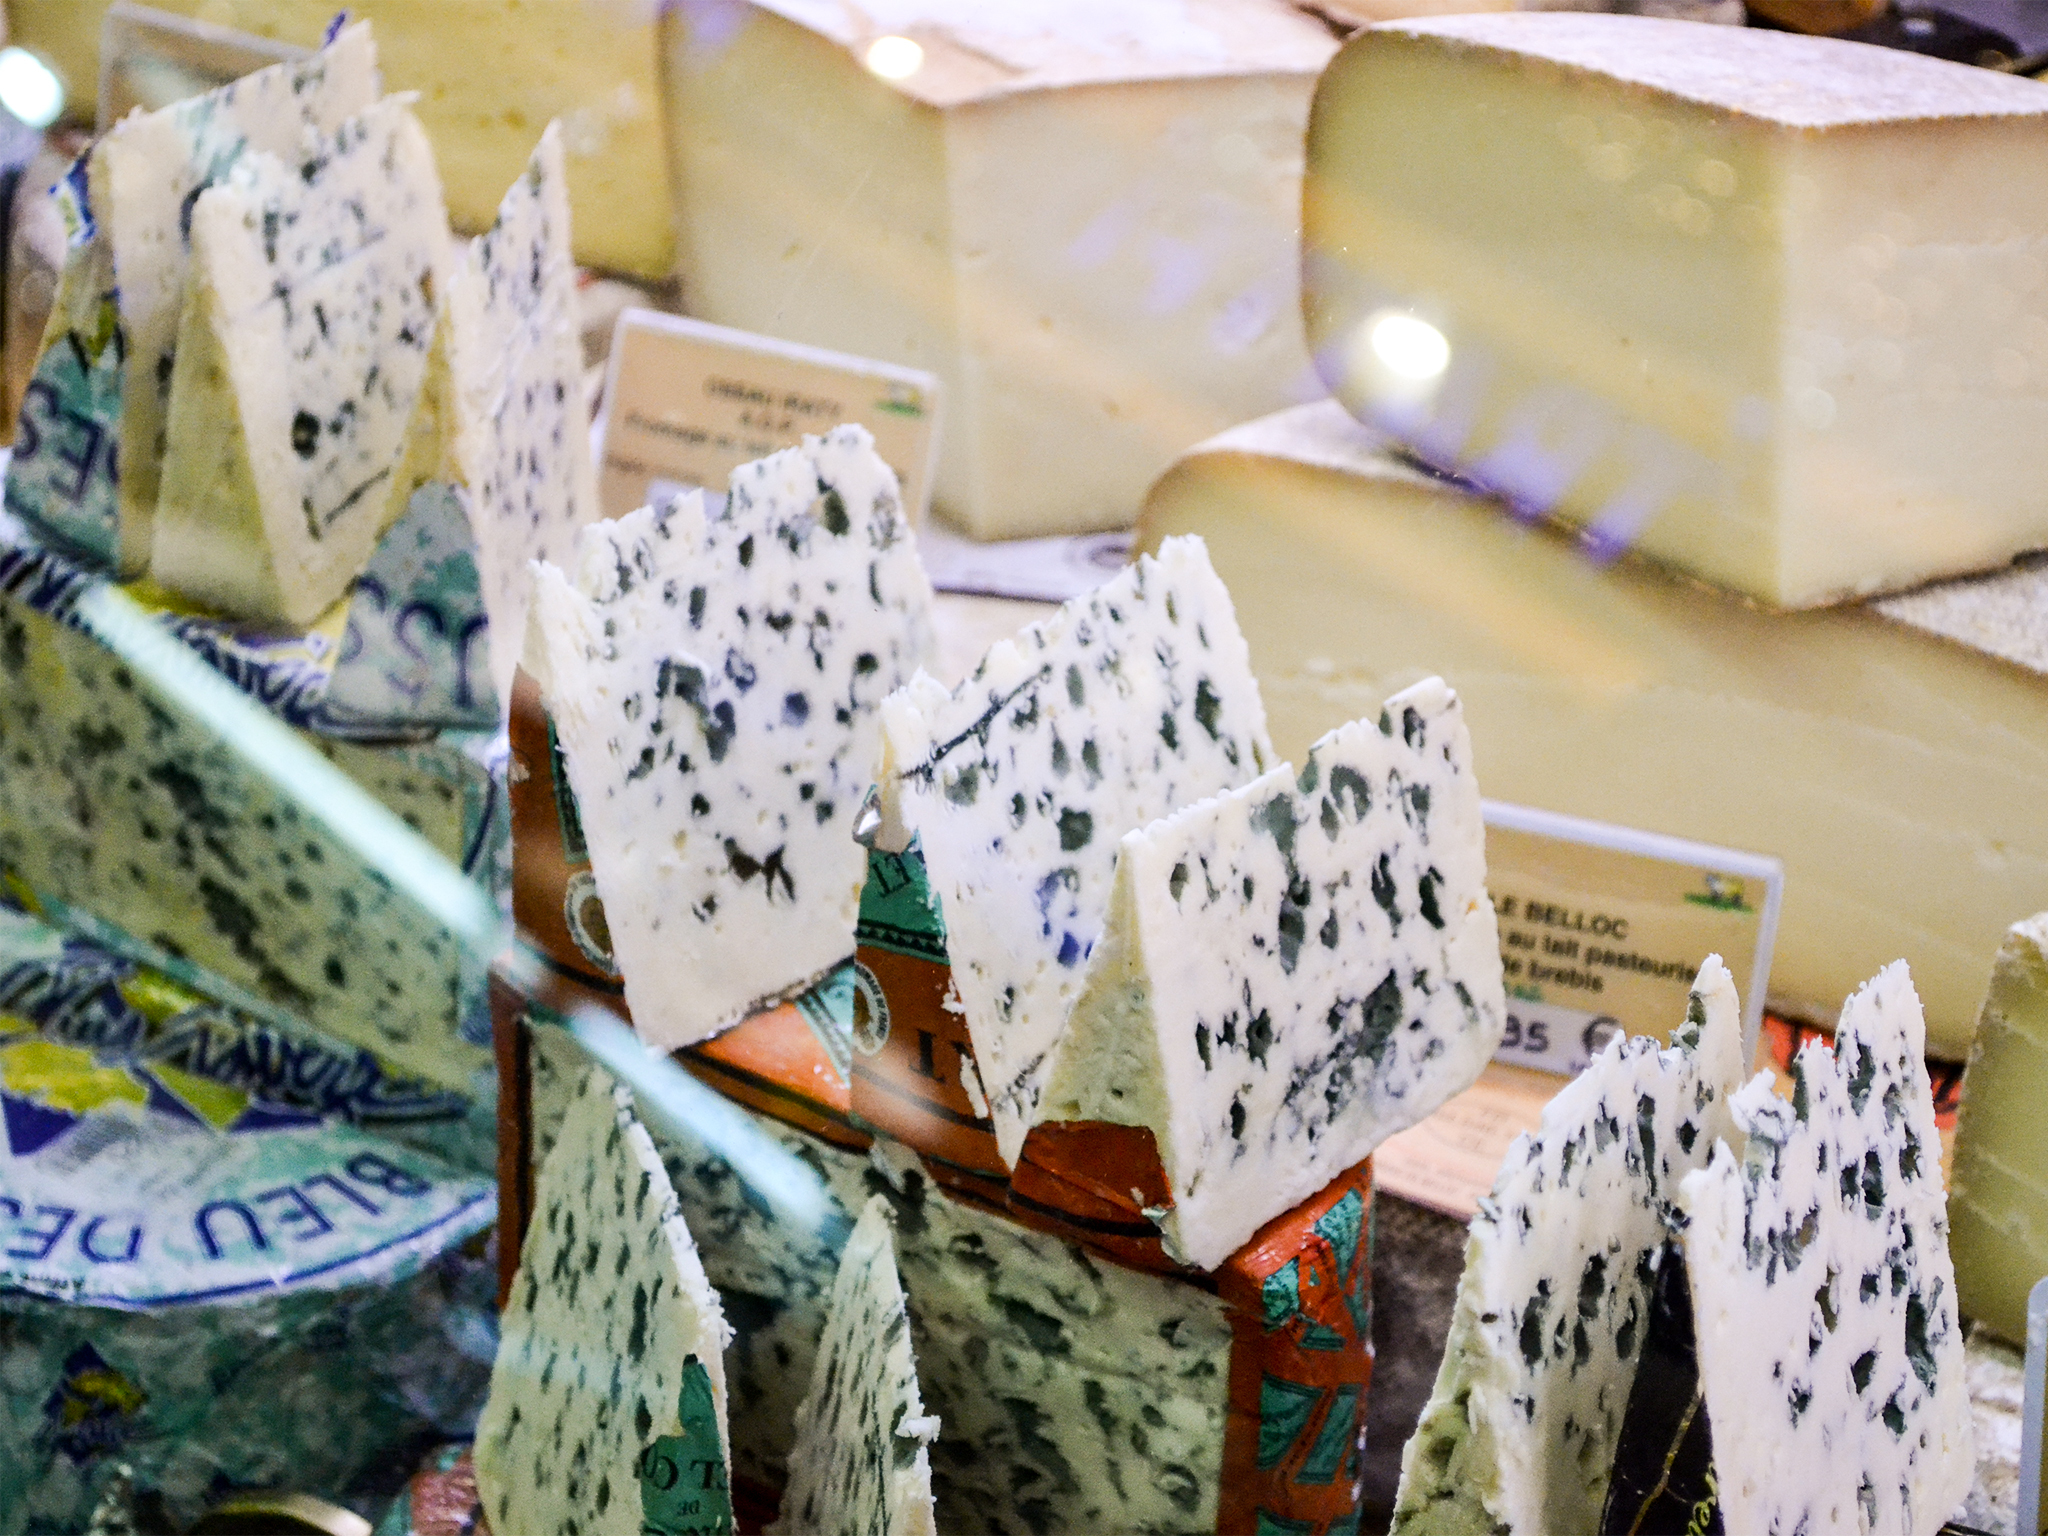 Buying French cheese like a boss at the Kings Cross Market